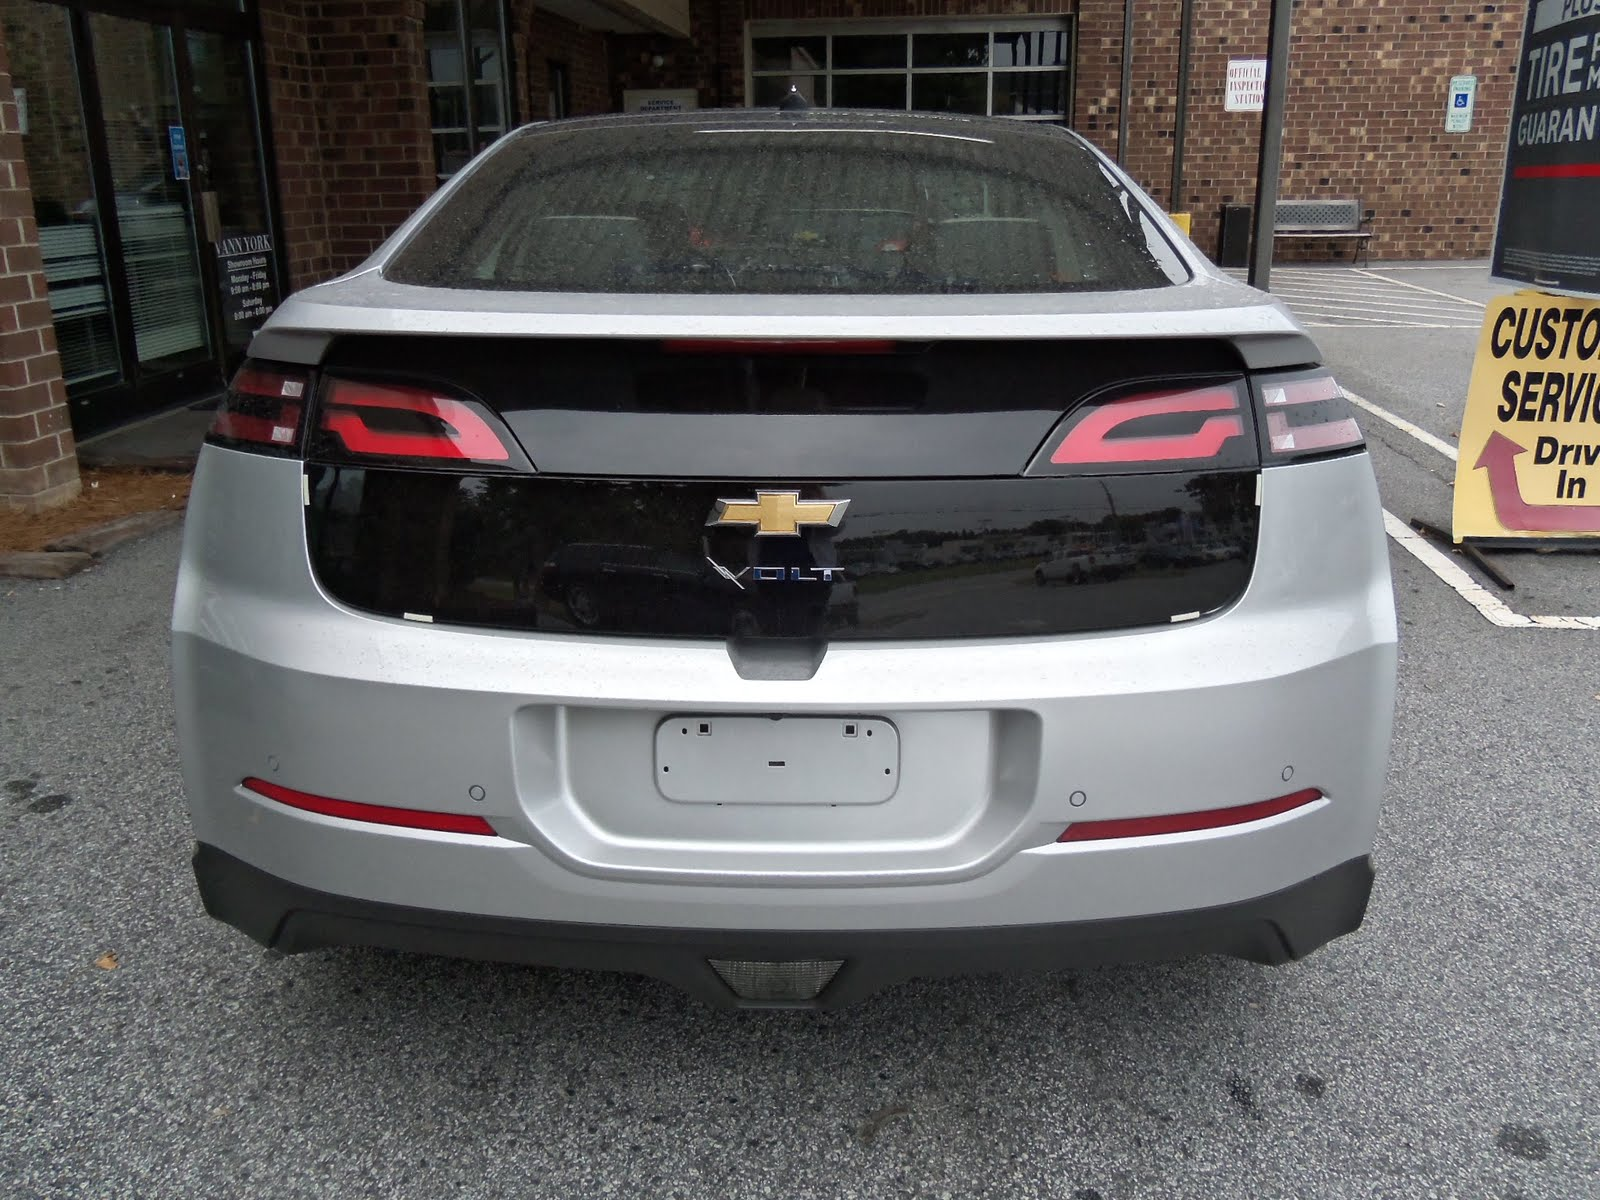 Vann York Chevrolet Buick Gmc Cadillac The Chevy Volt Is